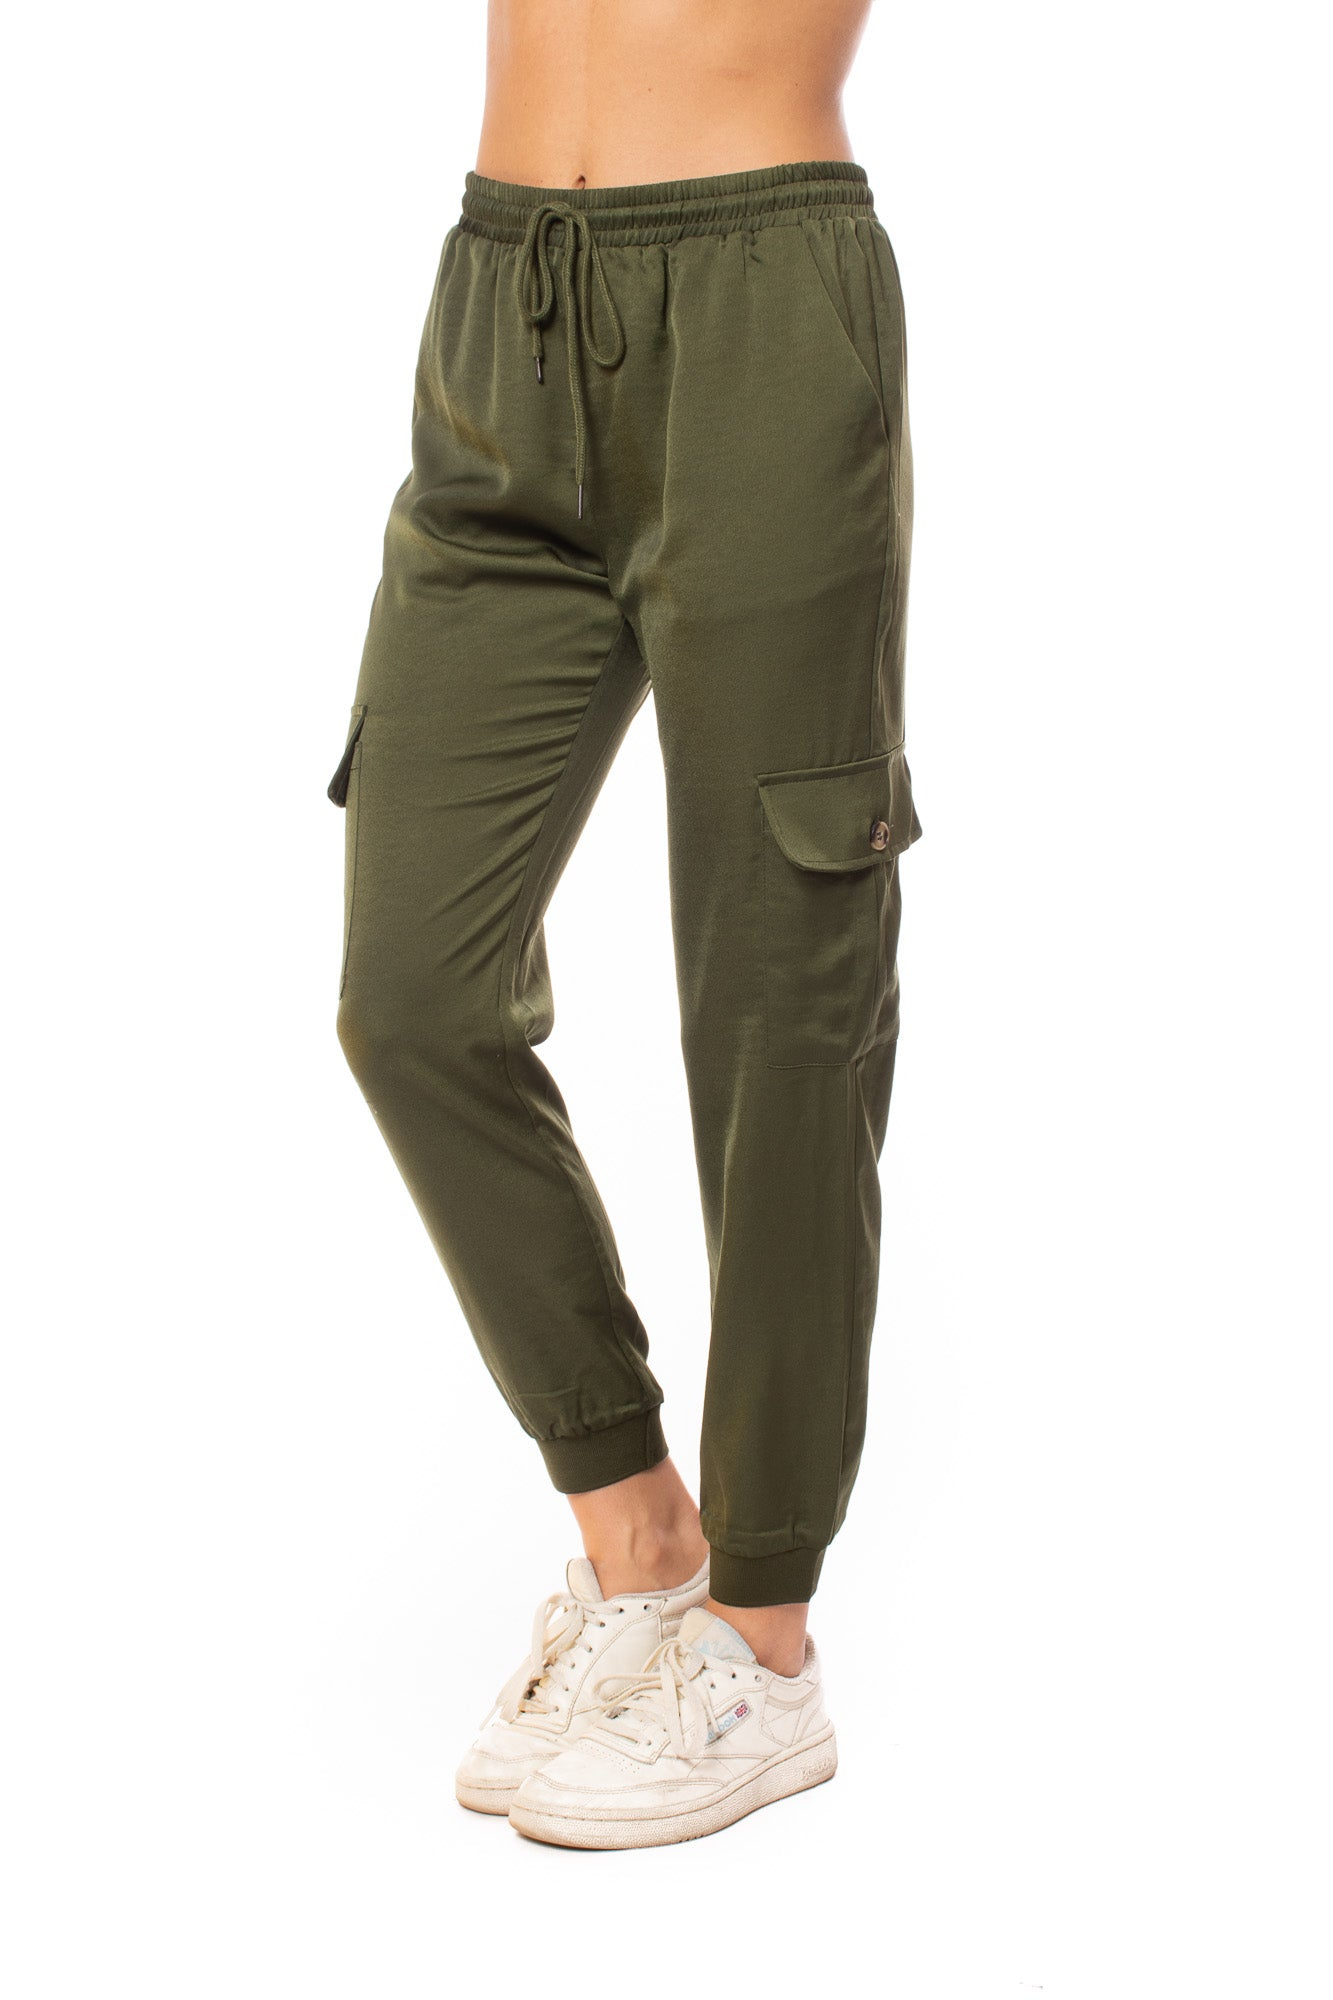 Heartland - Cassis Draw String Cargo Pocket Jogger (207rz8a, Olive)